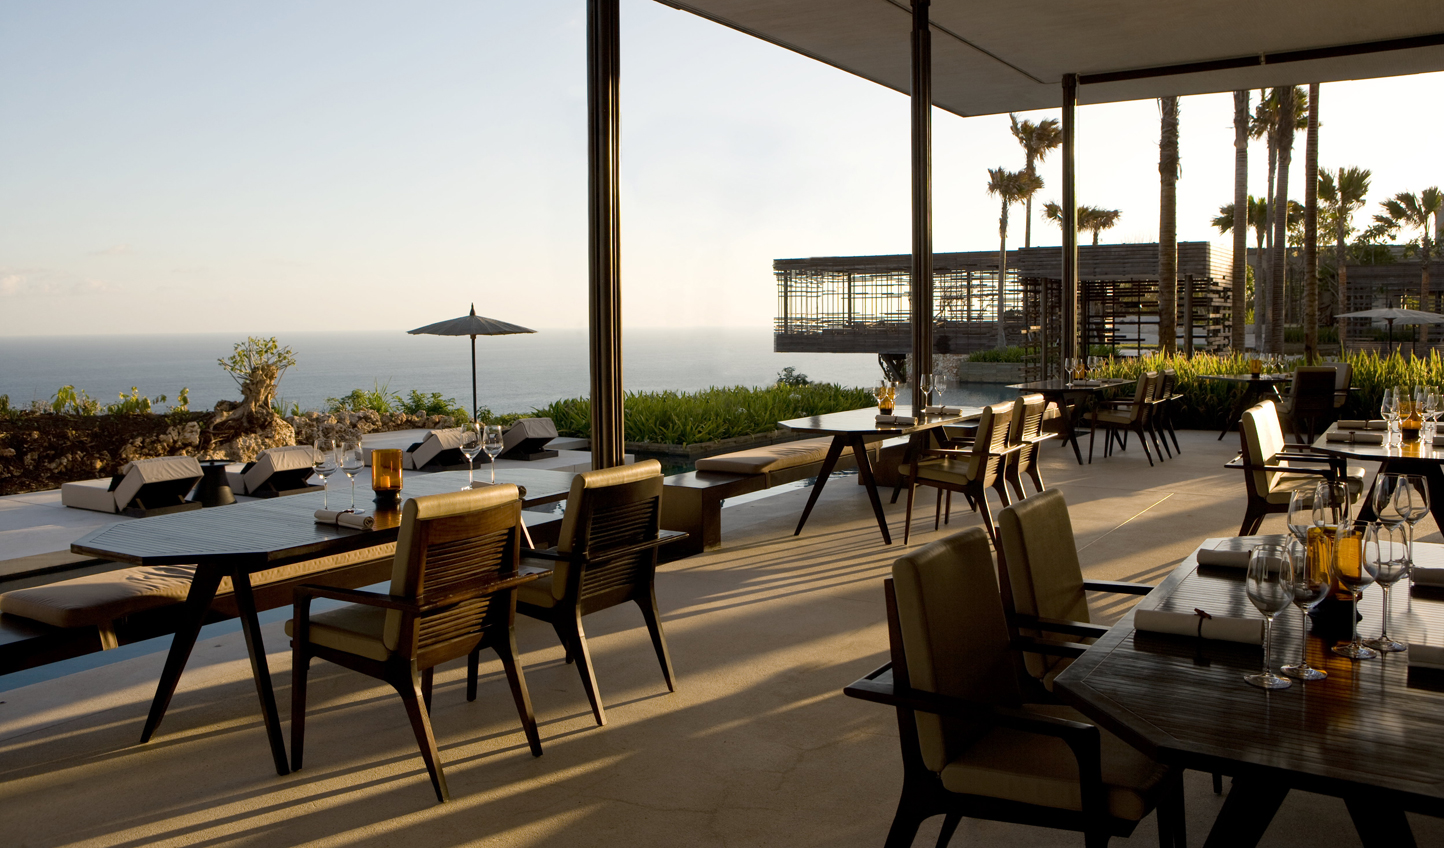 Relaxed dining with a breathtaking view